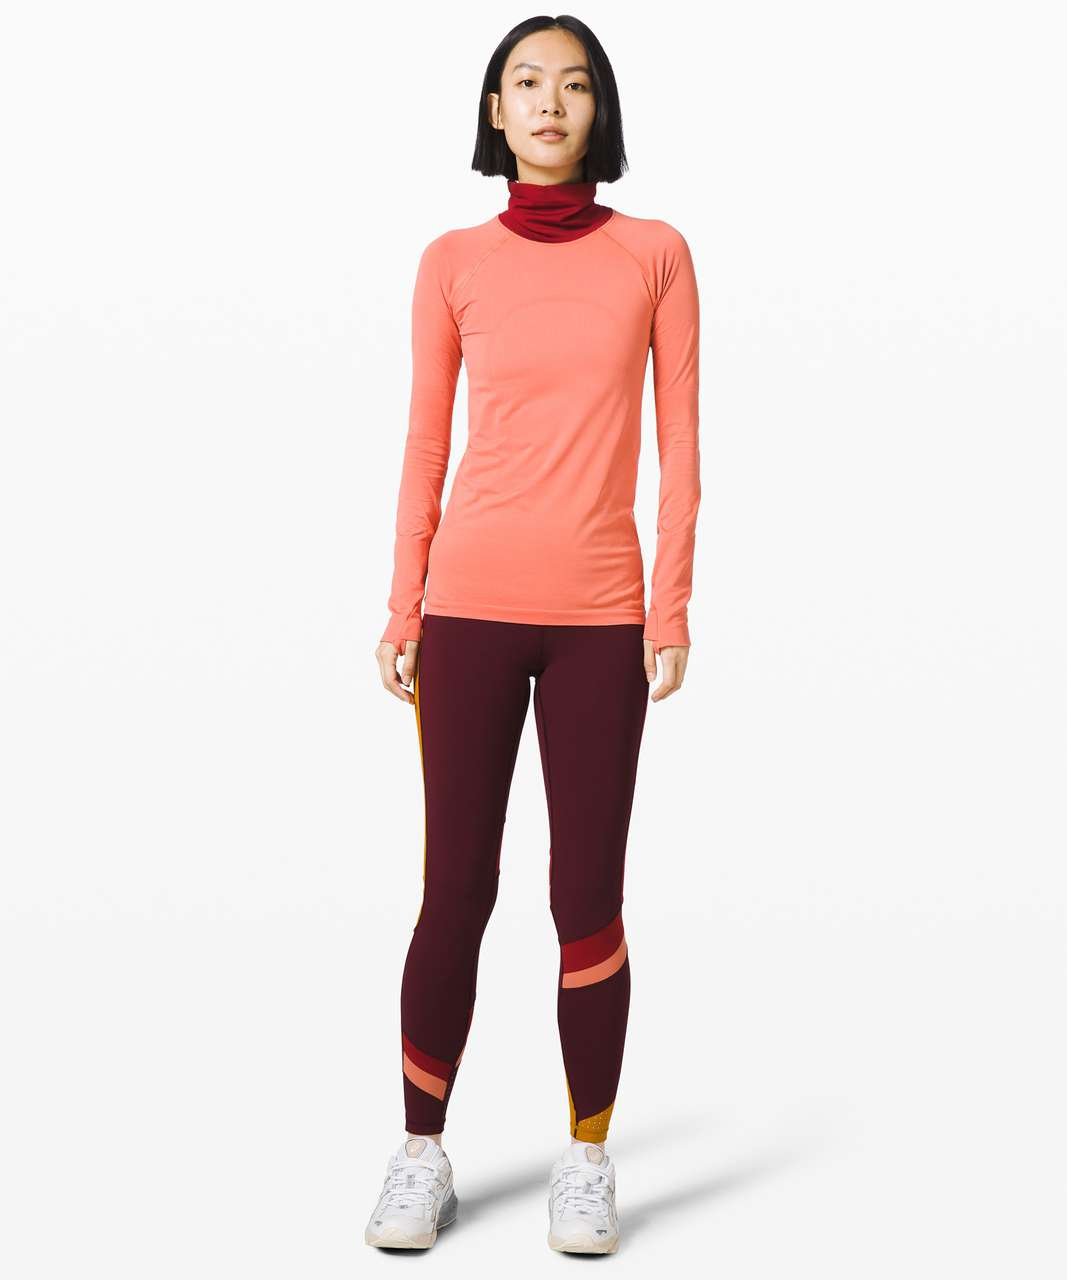 Lululemon Break New Ground Swiftly *lululemon x Roksanda - Rustic Coral / Caliente